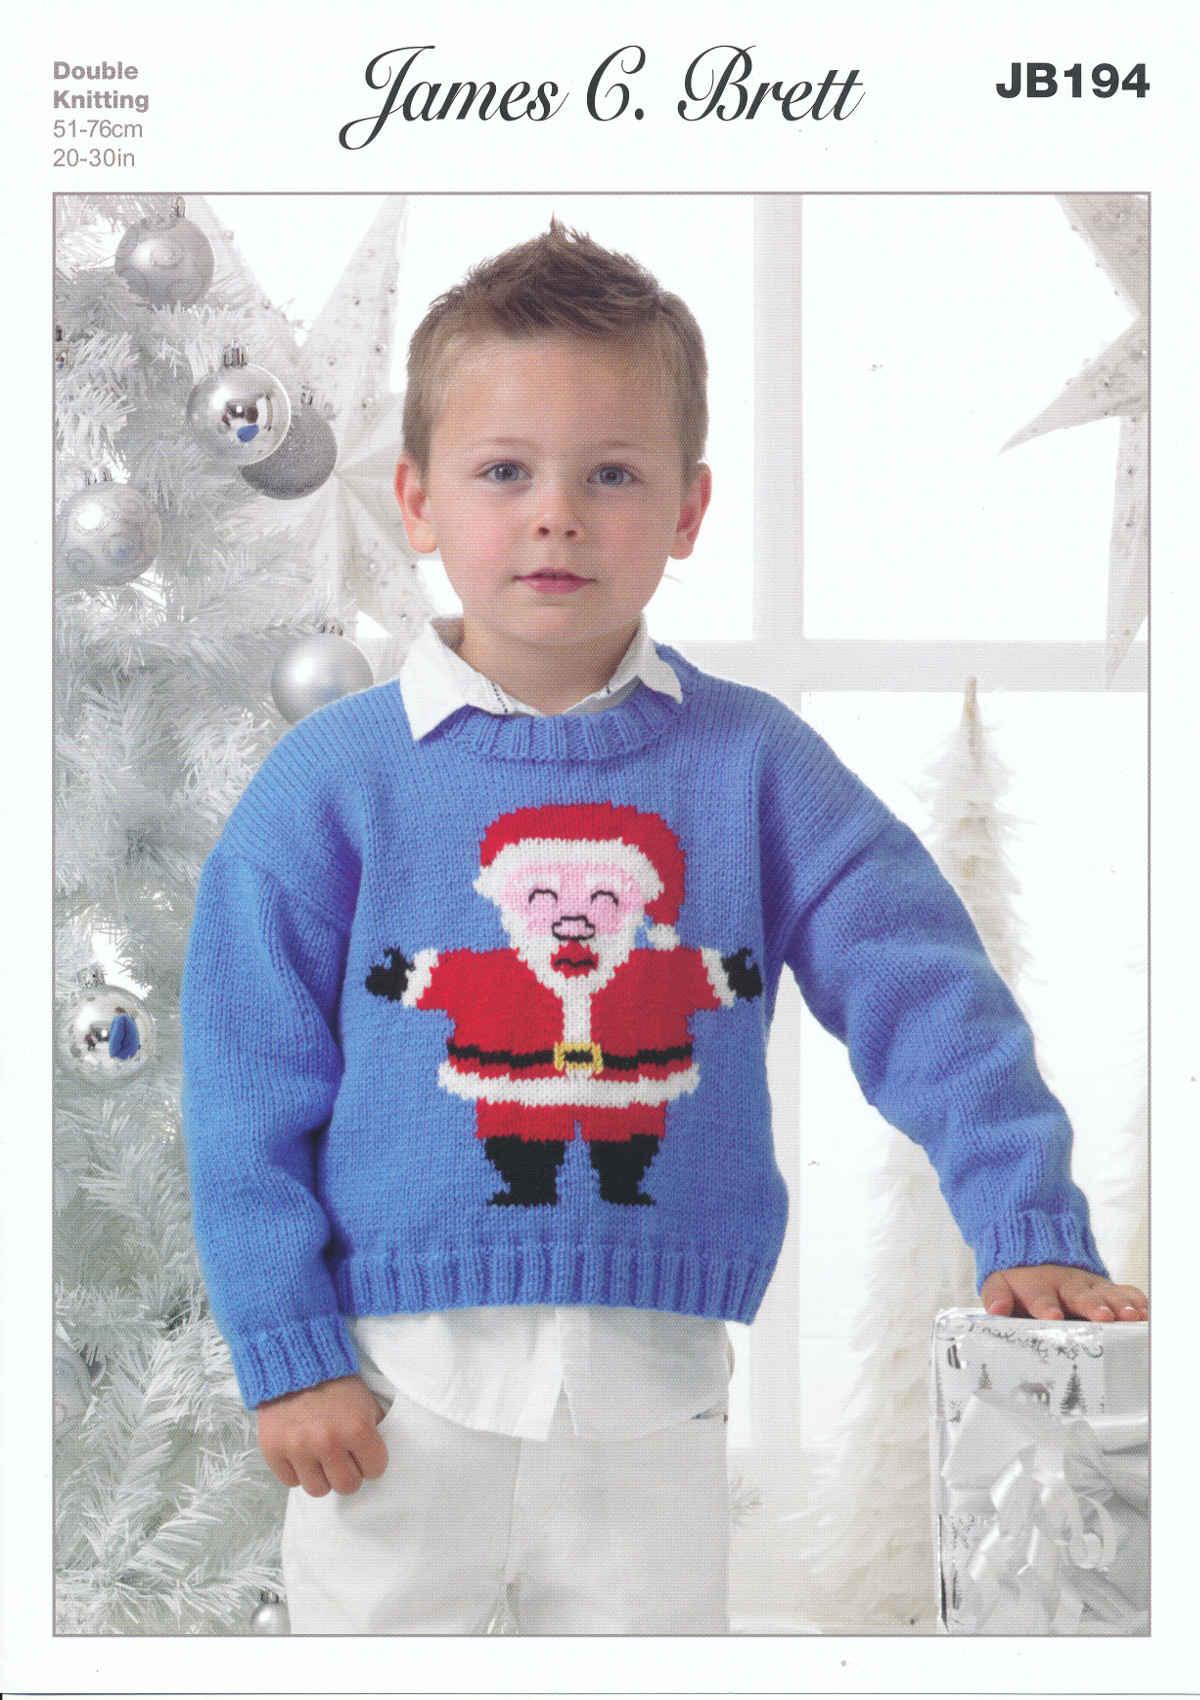 Christmas Child Knitting Patterns : James Brett Double Knitting Pattern Kids Christmas Santa Jumper Sweater JB194...